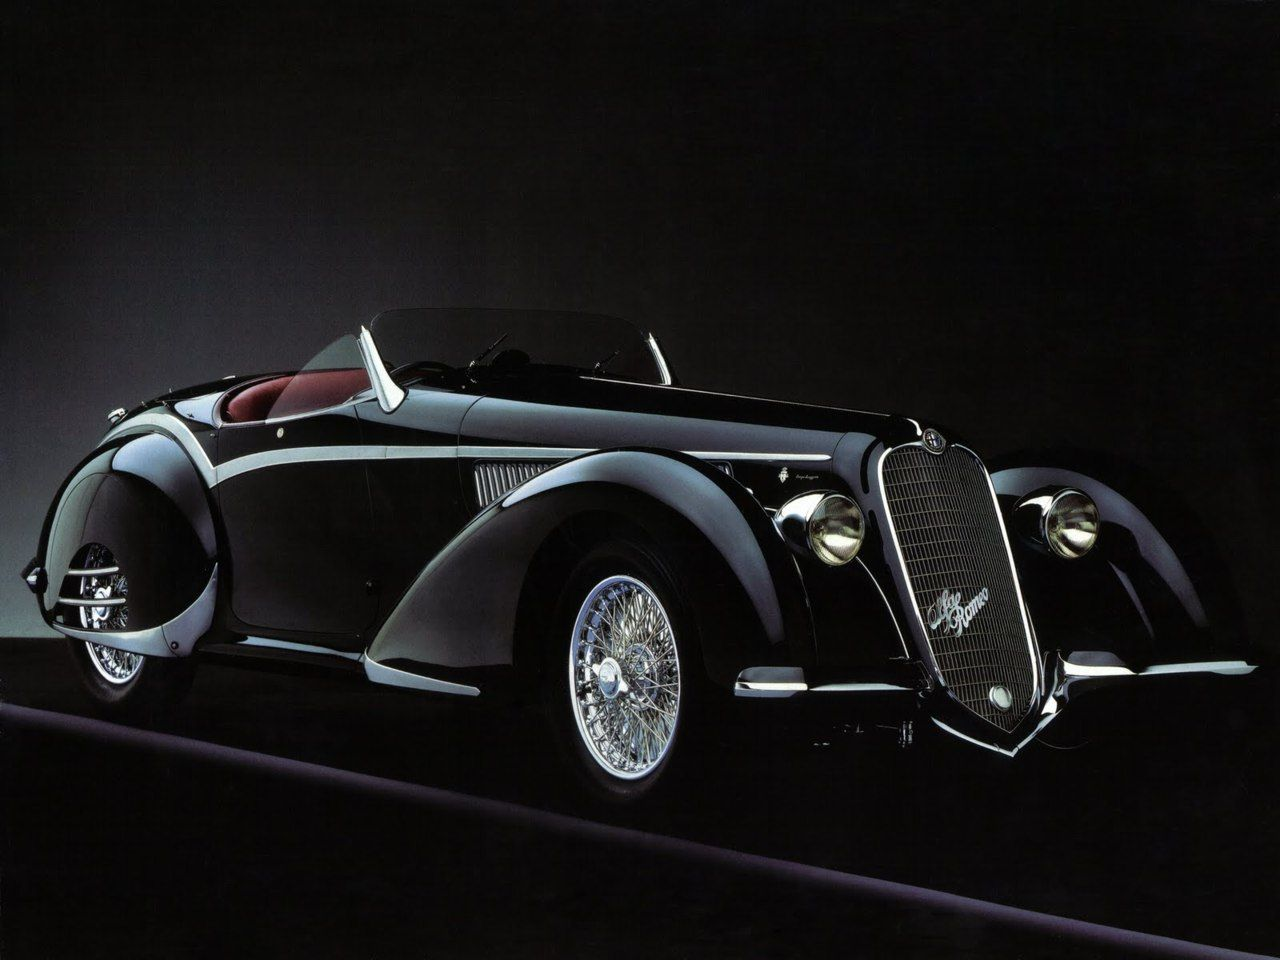 1938 alfa romeo 8c 2900b spider old cars and bikes and anything else on wheels pinterest. Black Bedroom Furniture Sets. Home Design Ideas